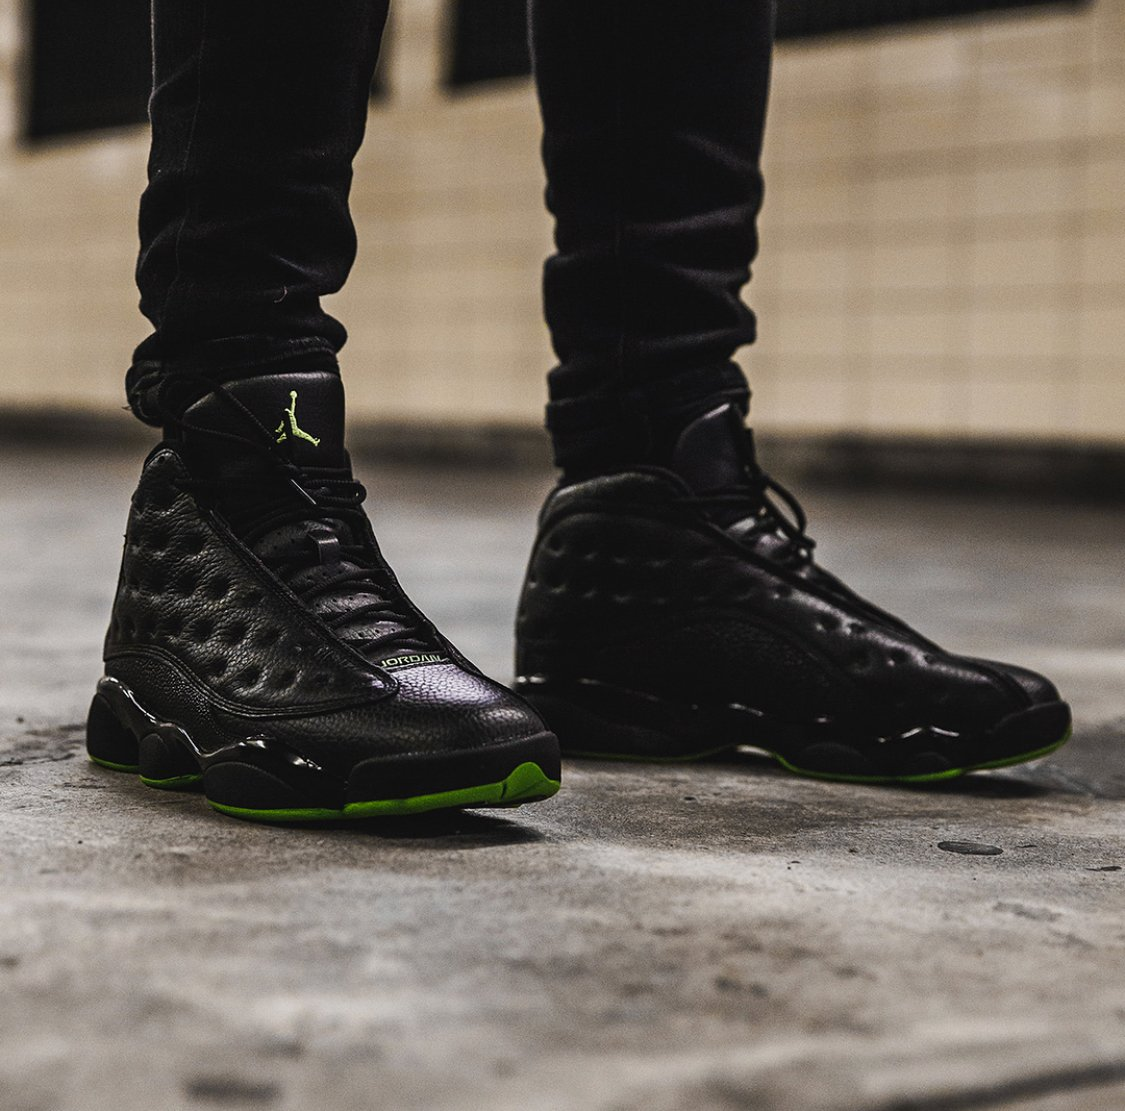 wholesale dealer 37da7 3e222 Here s a great on-foot look at the Air Jordan 13 Retro